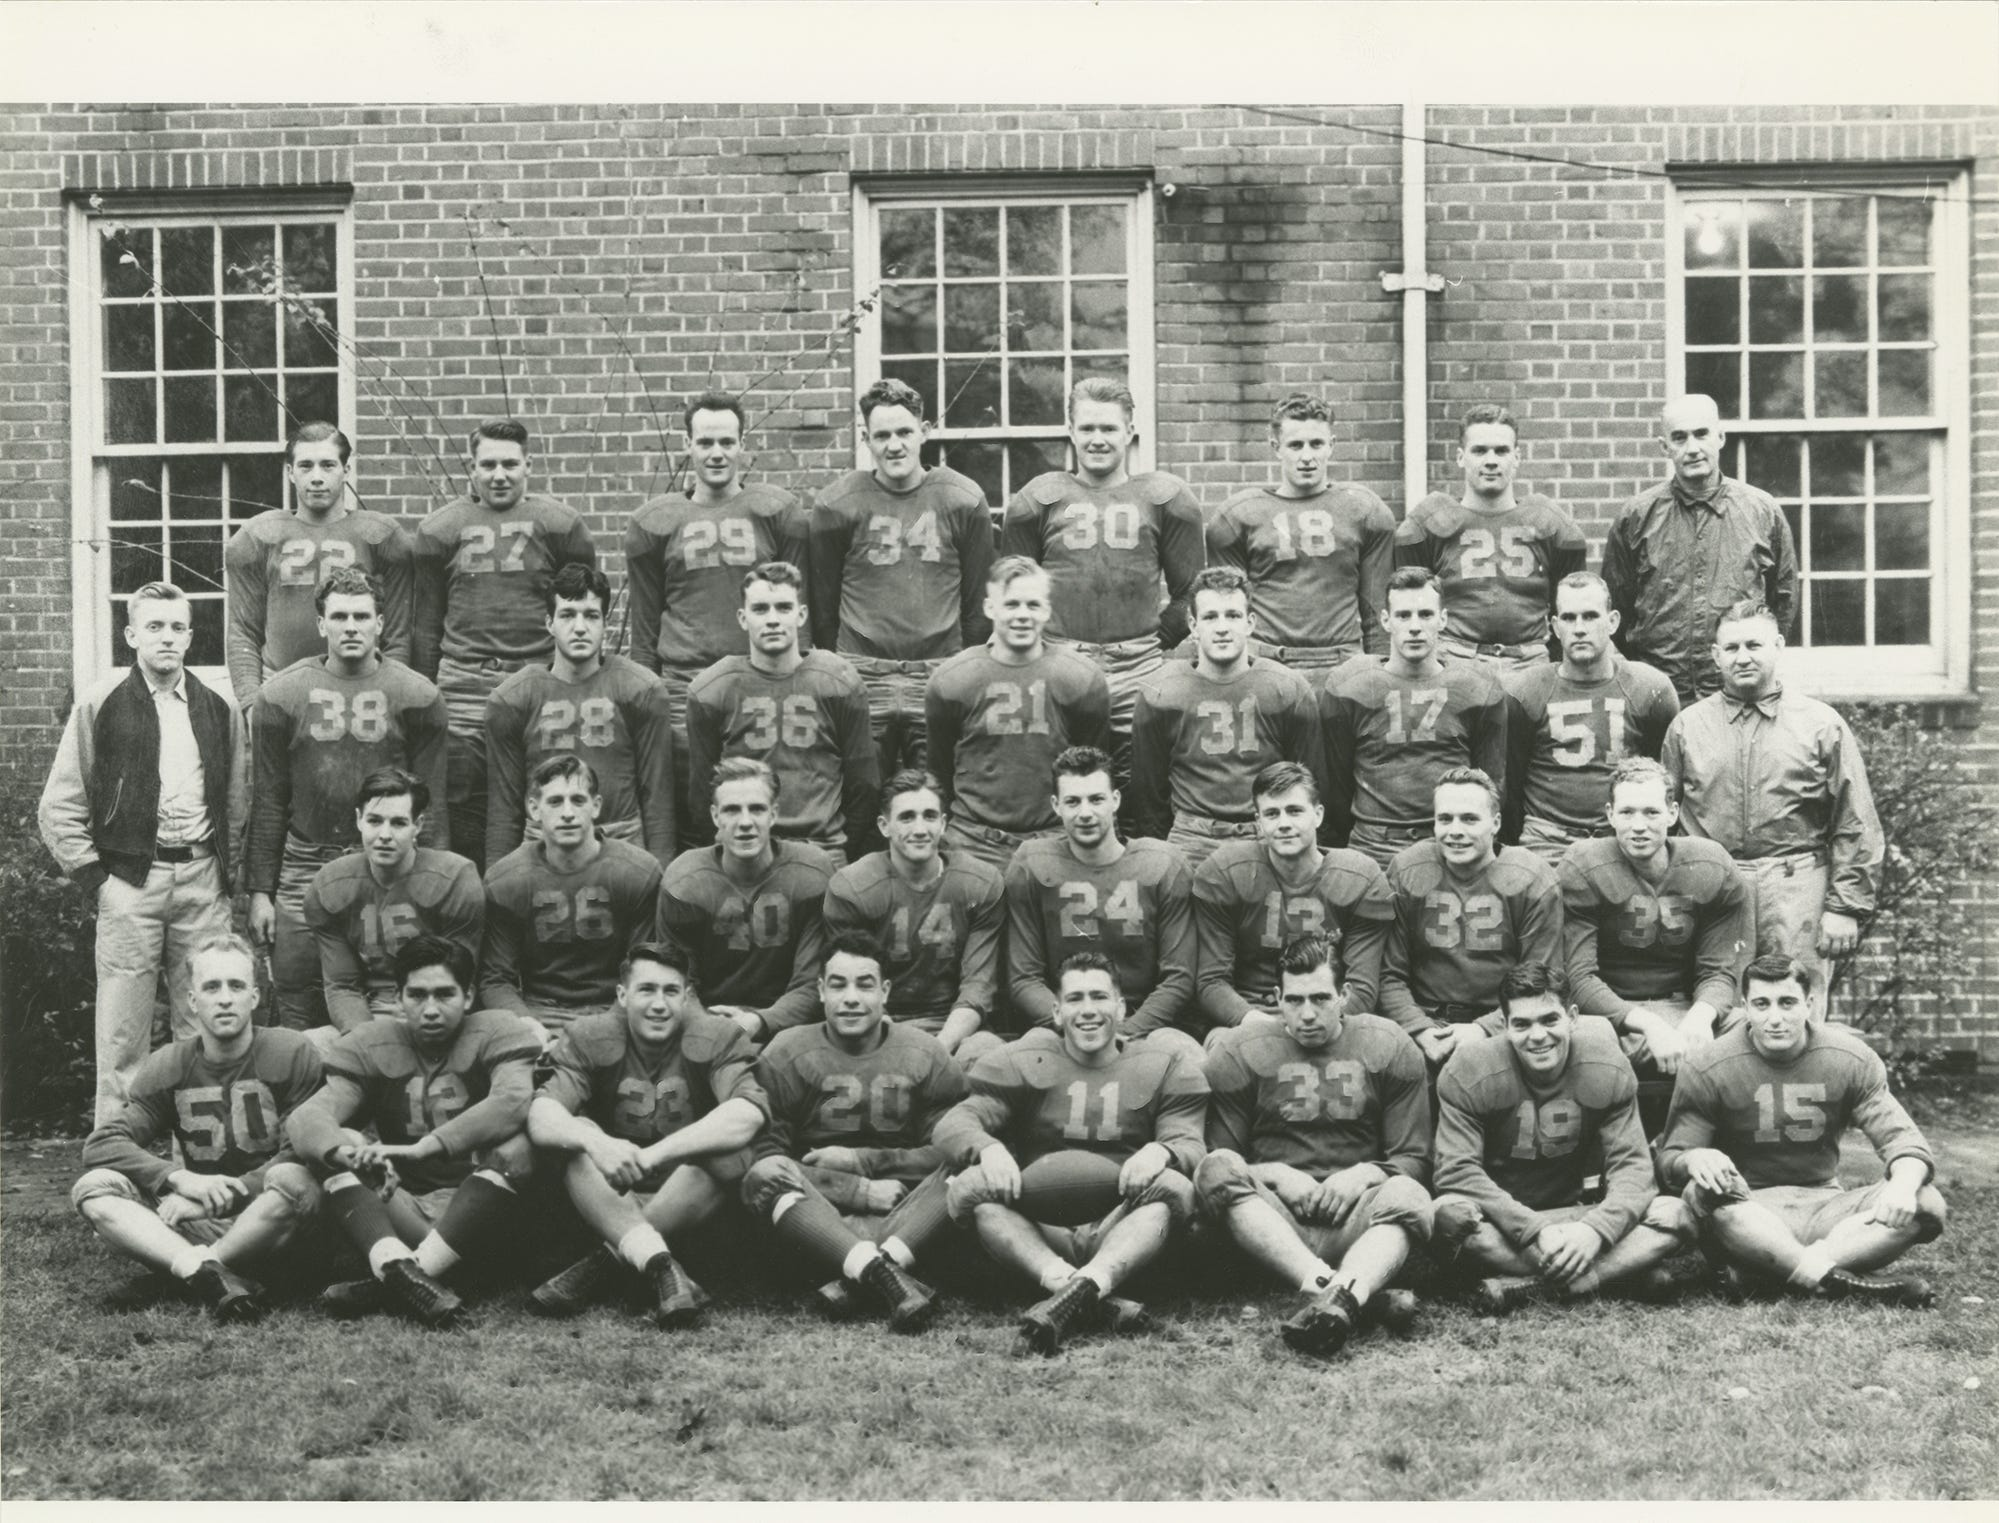 "The 1941 Willamette University football team photo from the yearbook. From left to right, front row: Irv Miller, Cecil Connors, Pat White, Tony Fraiola, Al Walden, Jim Fitzgerald, Buddy Reynolds and Chuck Furno. Second row: Earl Hampton, Bill Reder, Martin Barstad, Ted Ogdahl, Jim Burgess, Gene Stewart, Glenn Nordquist and Wally Olson. Third row: Team manager Dick Kern, Paul Cookingham, George Constable, David Kelly, Ken Jacobson, Allan Barrett, Marshall Barbour, Clarence Walden, assistant coach Howard Maple. Back row: David Kurtz, Robert Bennett, Gordon Moore, Andy Rogers, Neil Morley, Marv Goodman, Carrel Deiner, and head coach Roy S. ""Spec"" Keene. (Note: Cookingham, Kurtz, Clarence Walden and coach Maple did not travel with the team to Hawaii.)"